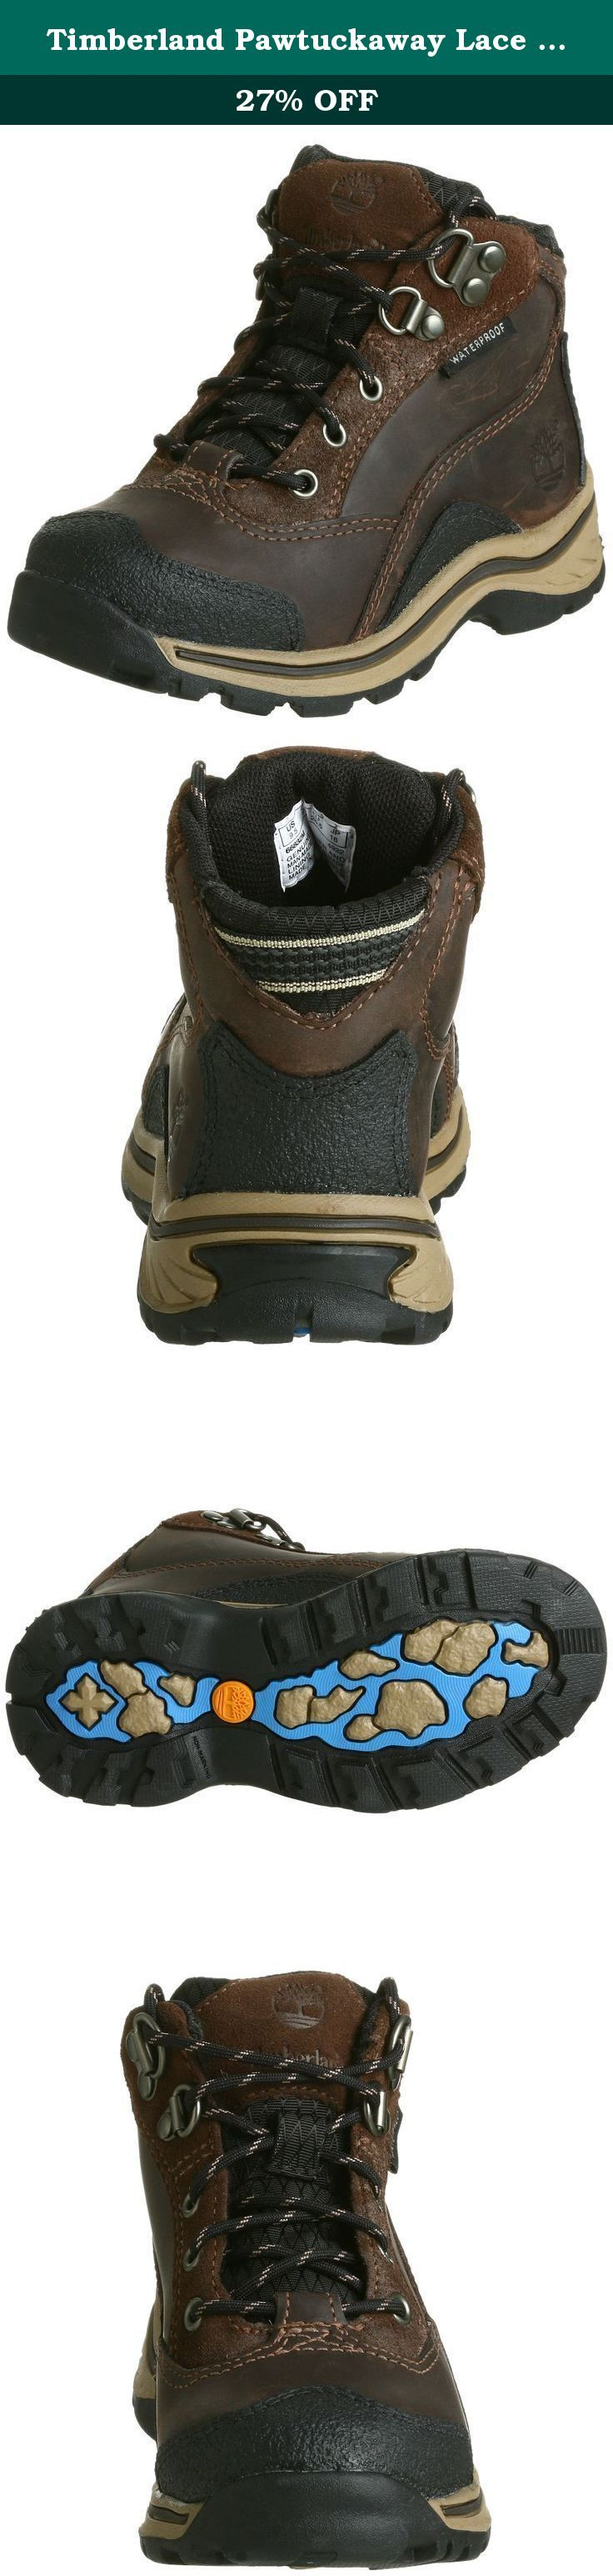 Timberland Pawtuckaway Lace Hiker (Toddler/Little Kid/Big Kid),Brown,12 M US Little Kid. The Pawtuckaway Lace boot from Timberland Kids ensures a secure, all-day fit for your little adventurer thanks to its D-ring-assisted lacing system, while an EVA footbed provides durable cushy comfort.